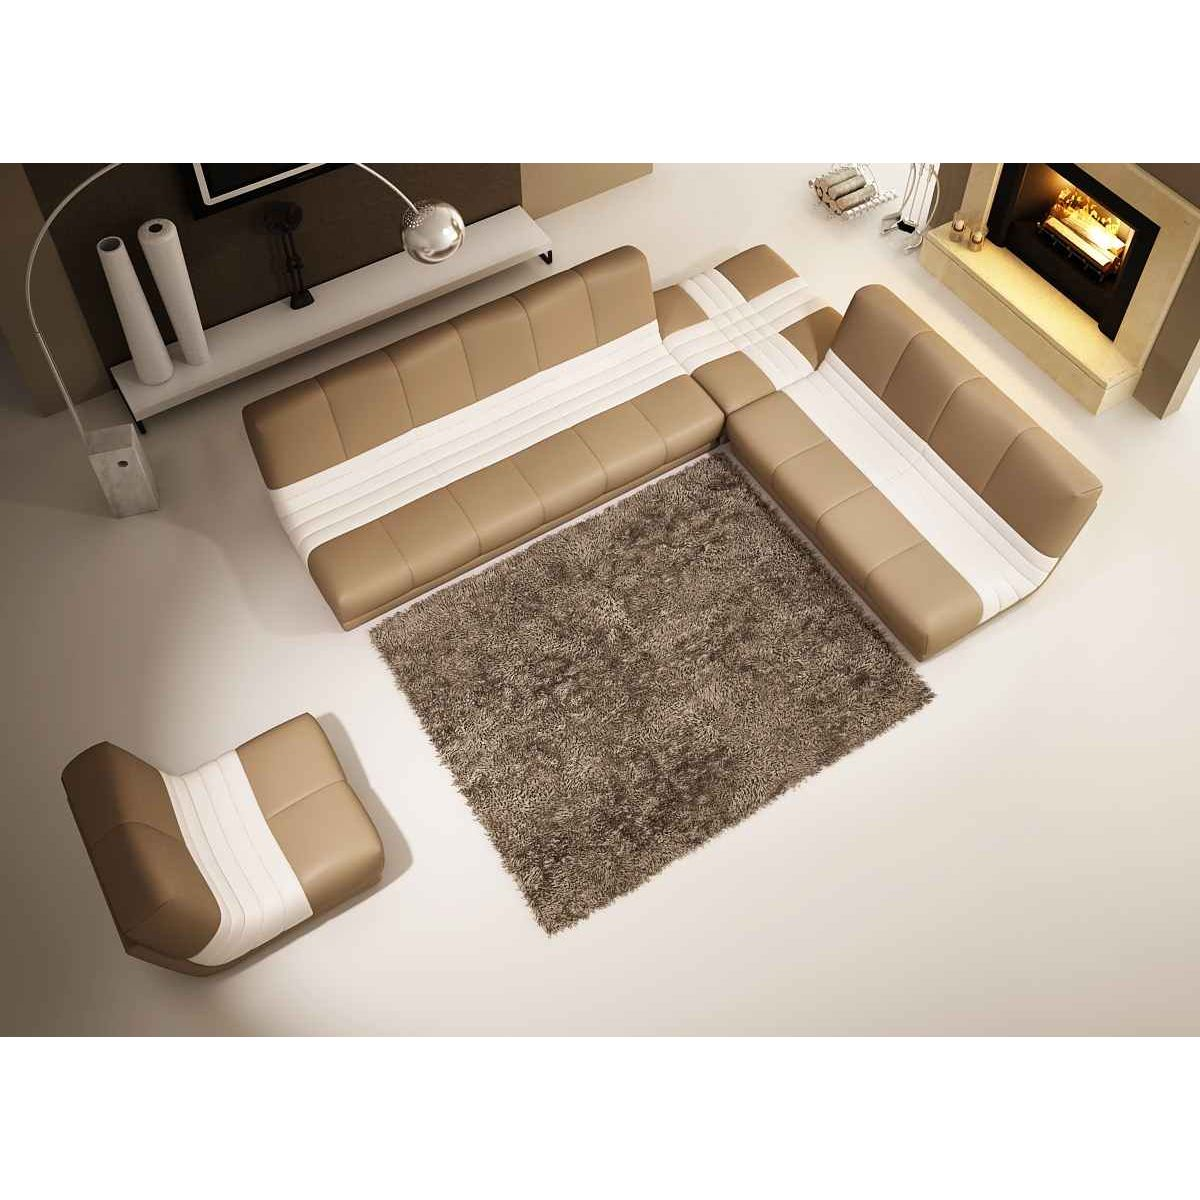 deco in paris canape d angle fauteuil modulable en cuir beige et blanc caprice caprice beige blanc. Black Bedroom Furniture Sets. Home Design Ideas